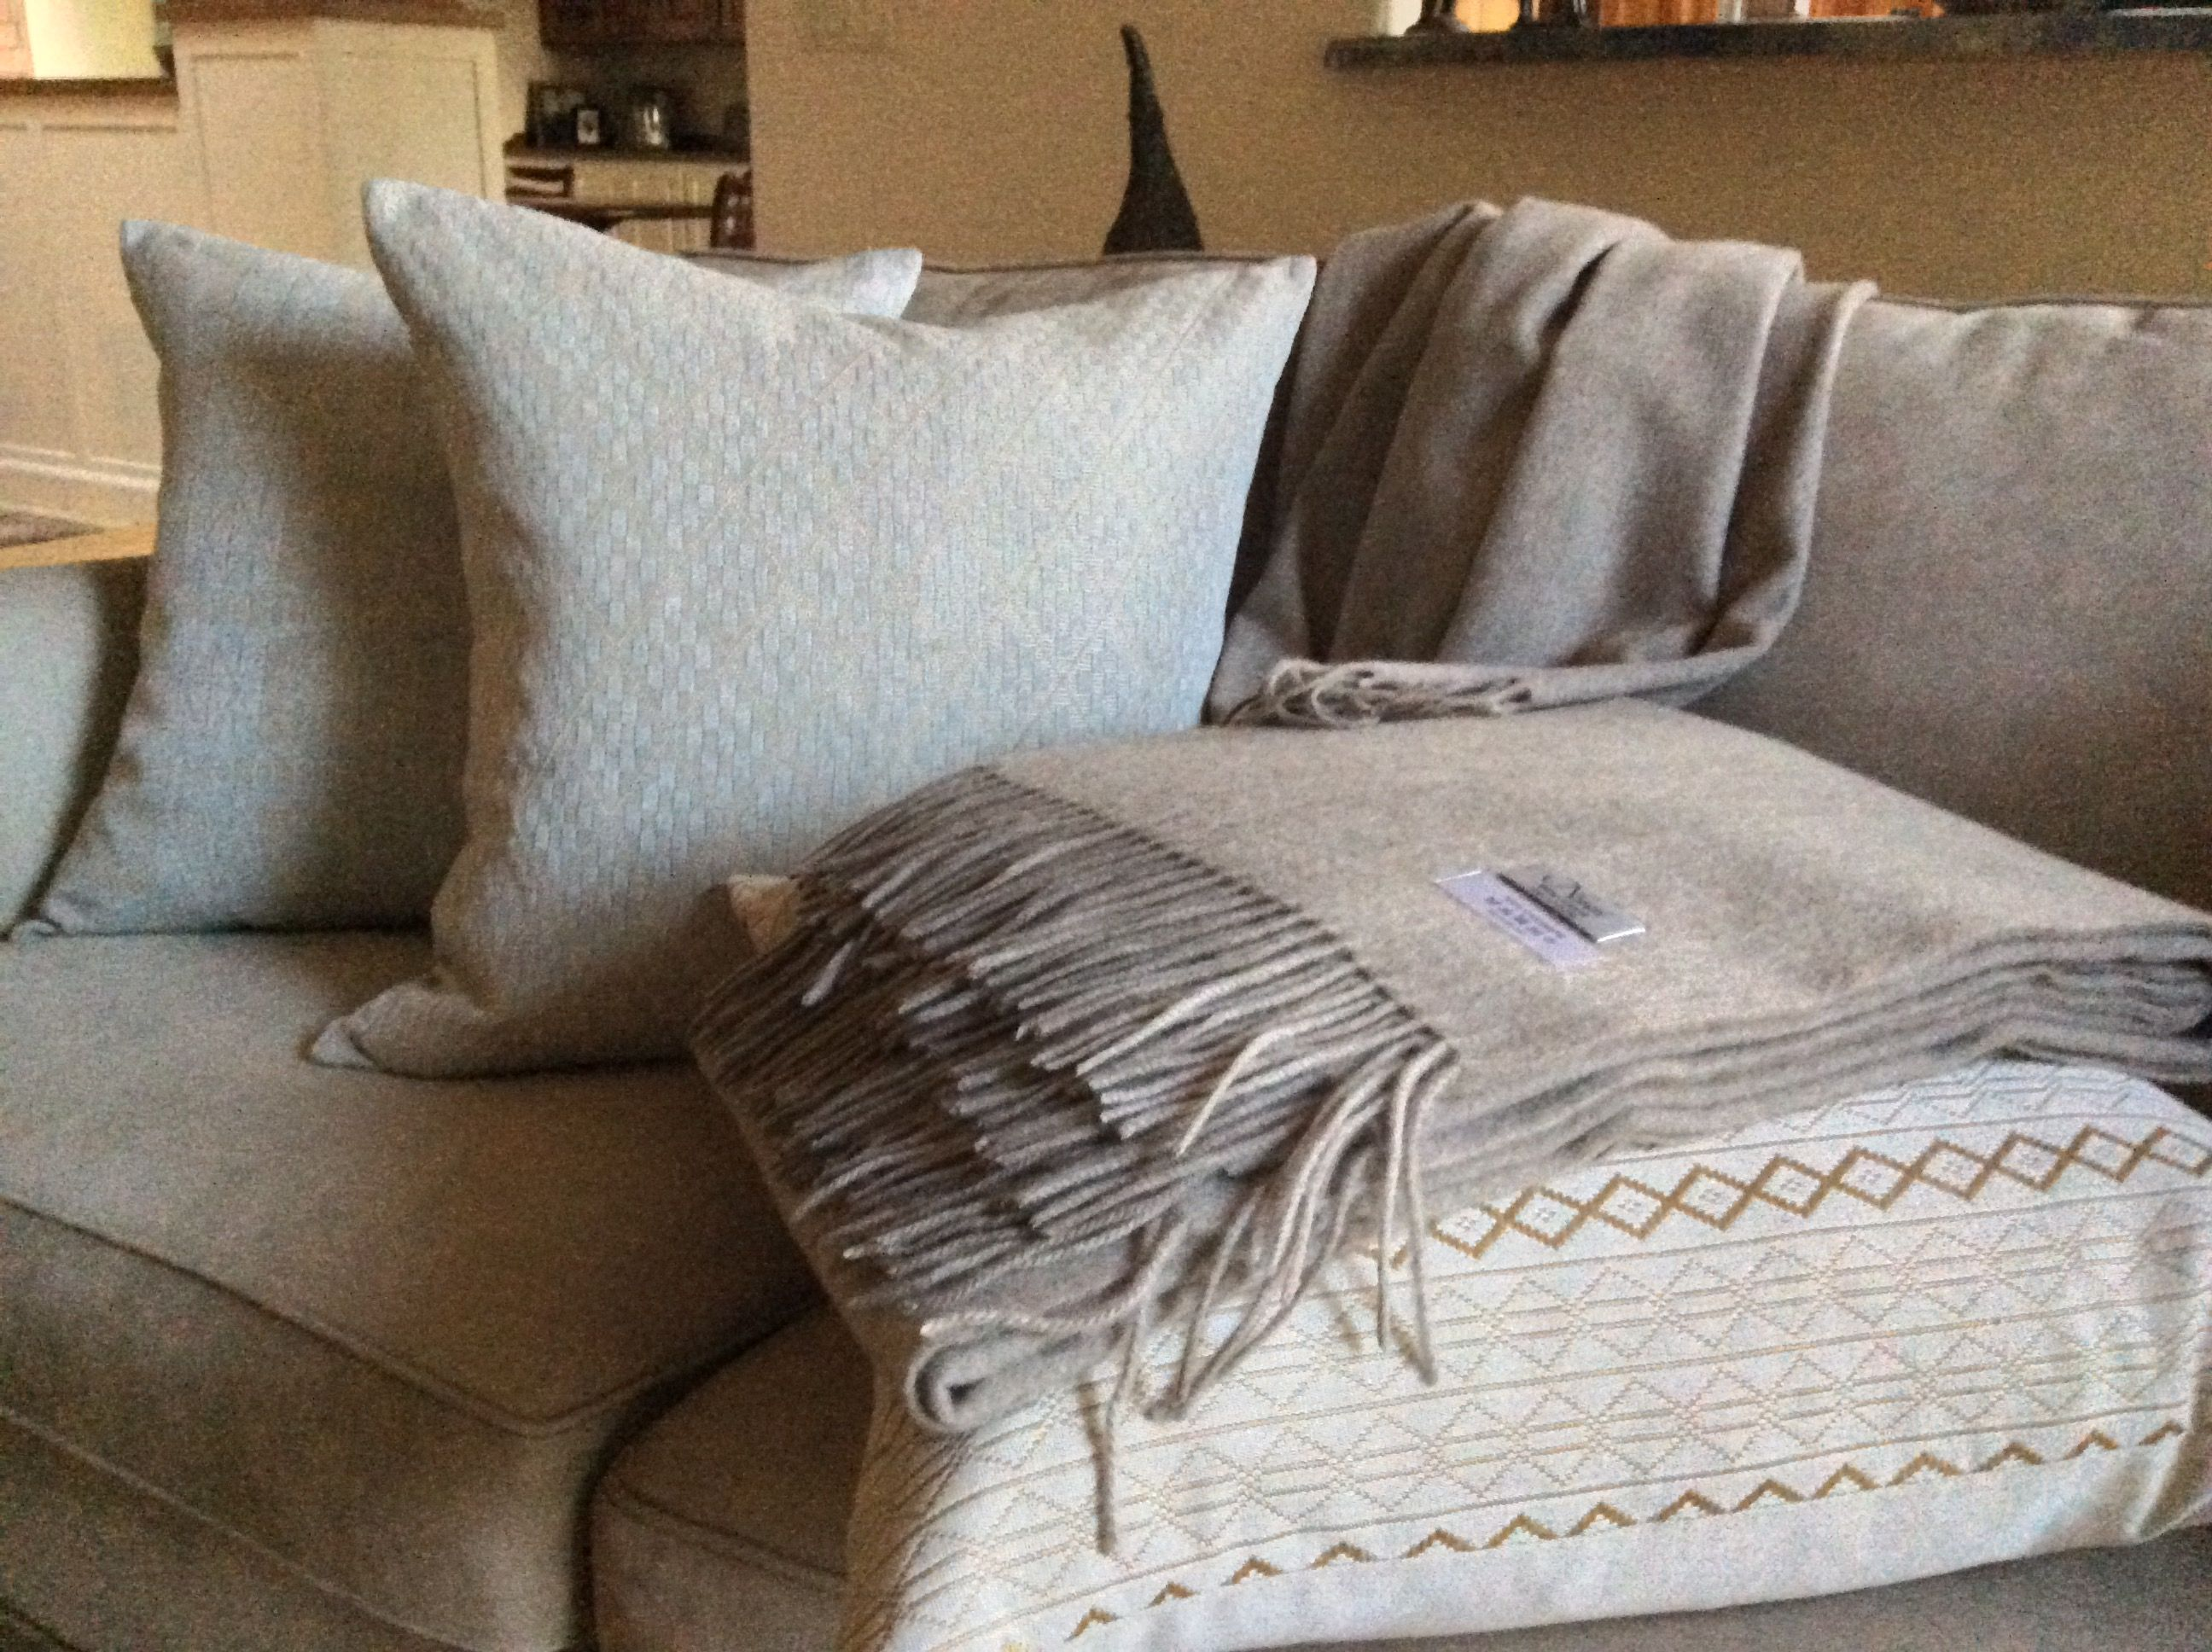 Our Cashmere Throws Are Among Our Most Popular Textiles For The